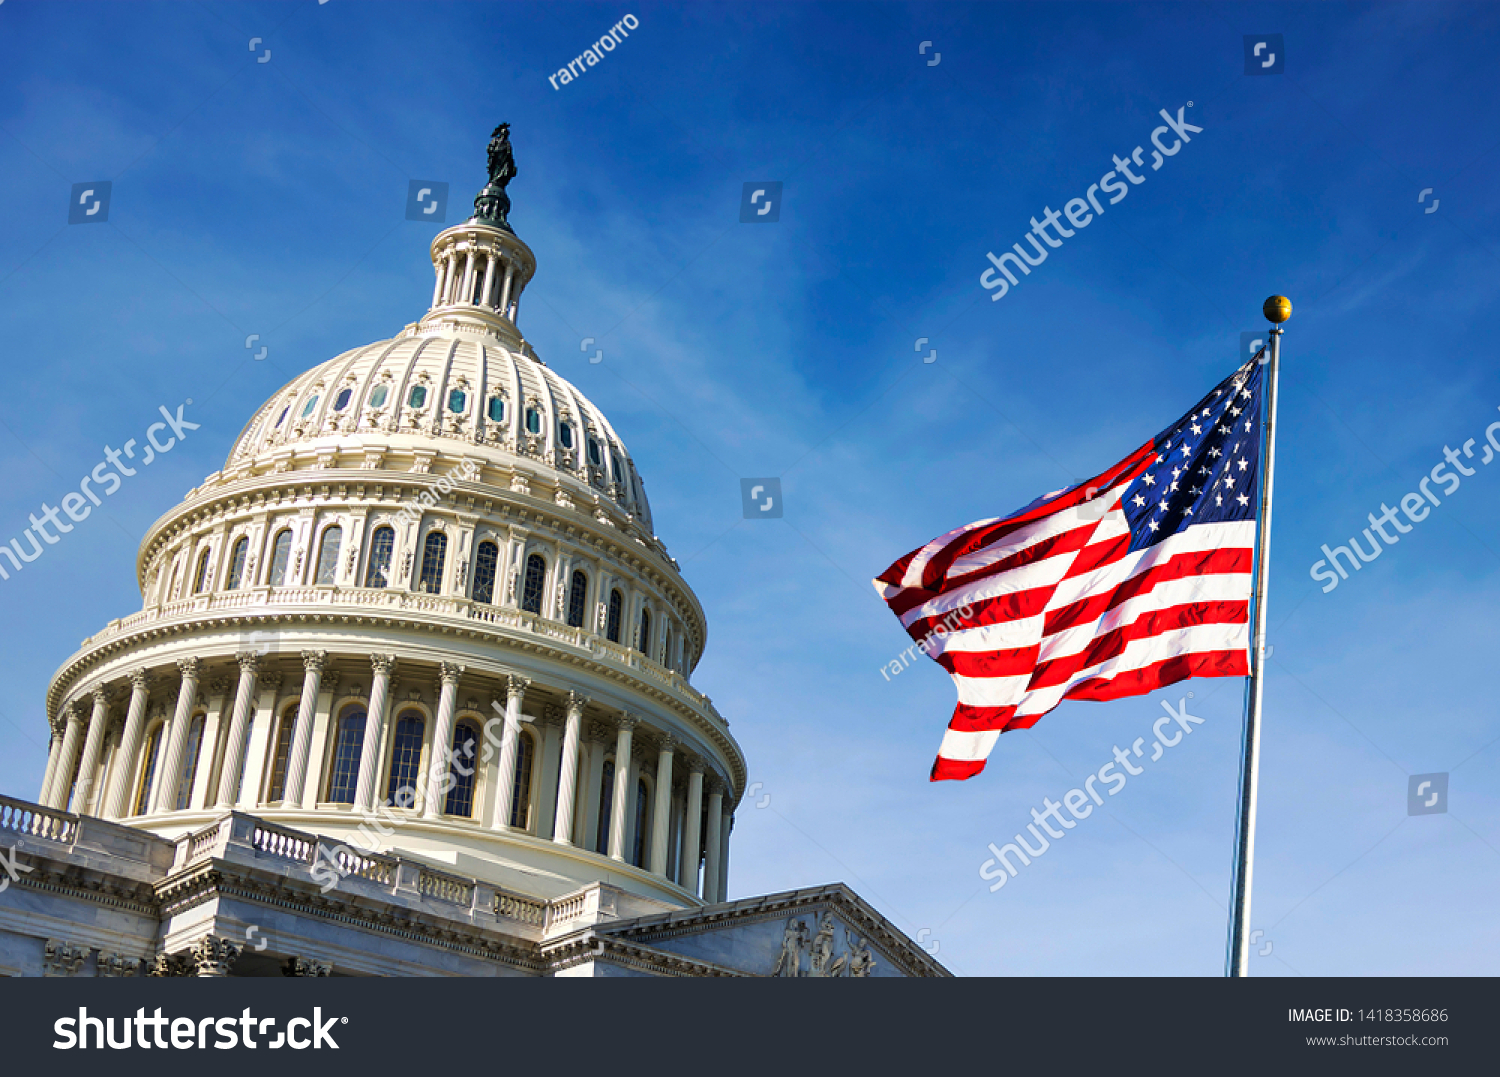 American flag waving with the Capitol Hill in the background #1418358686